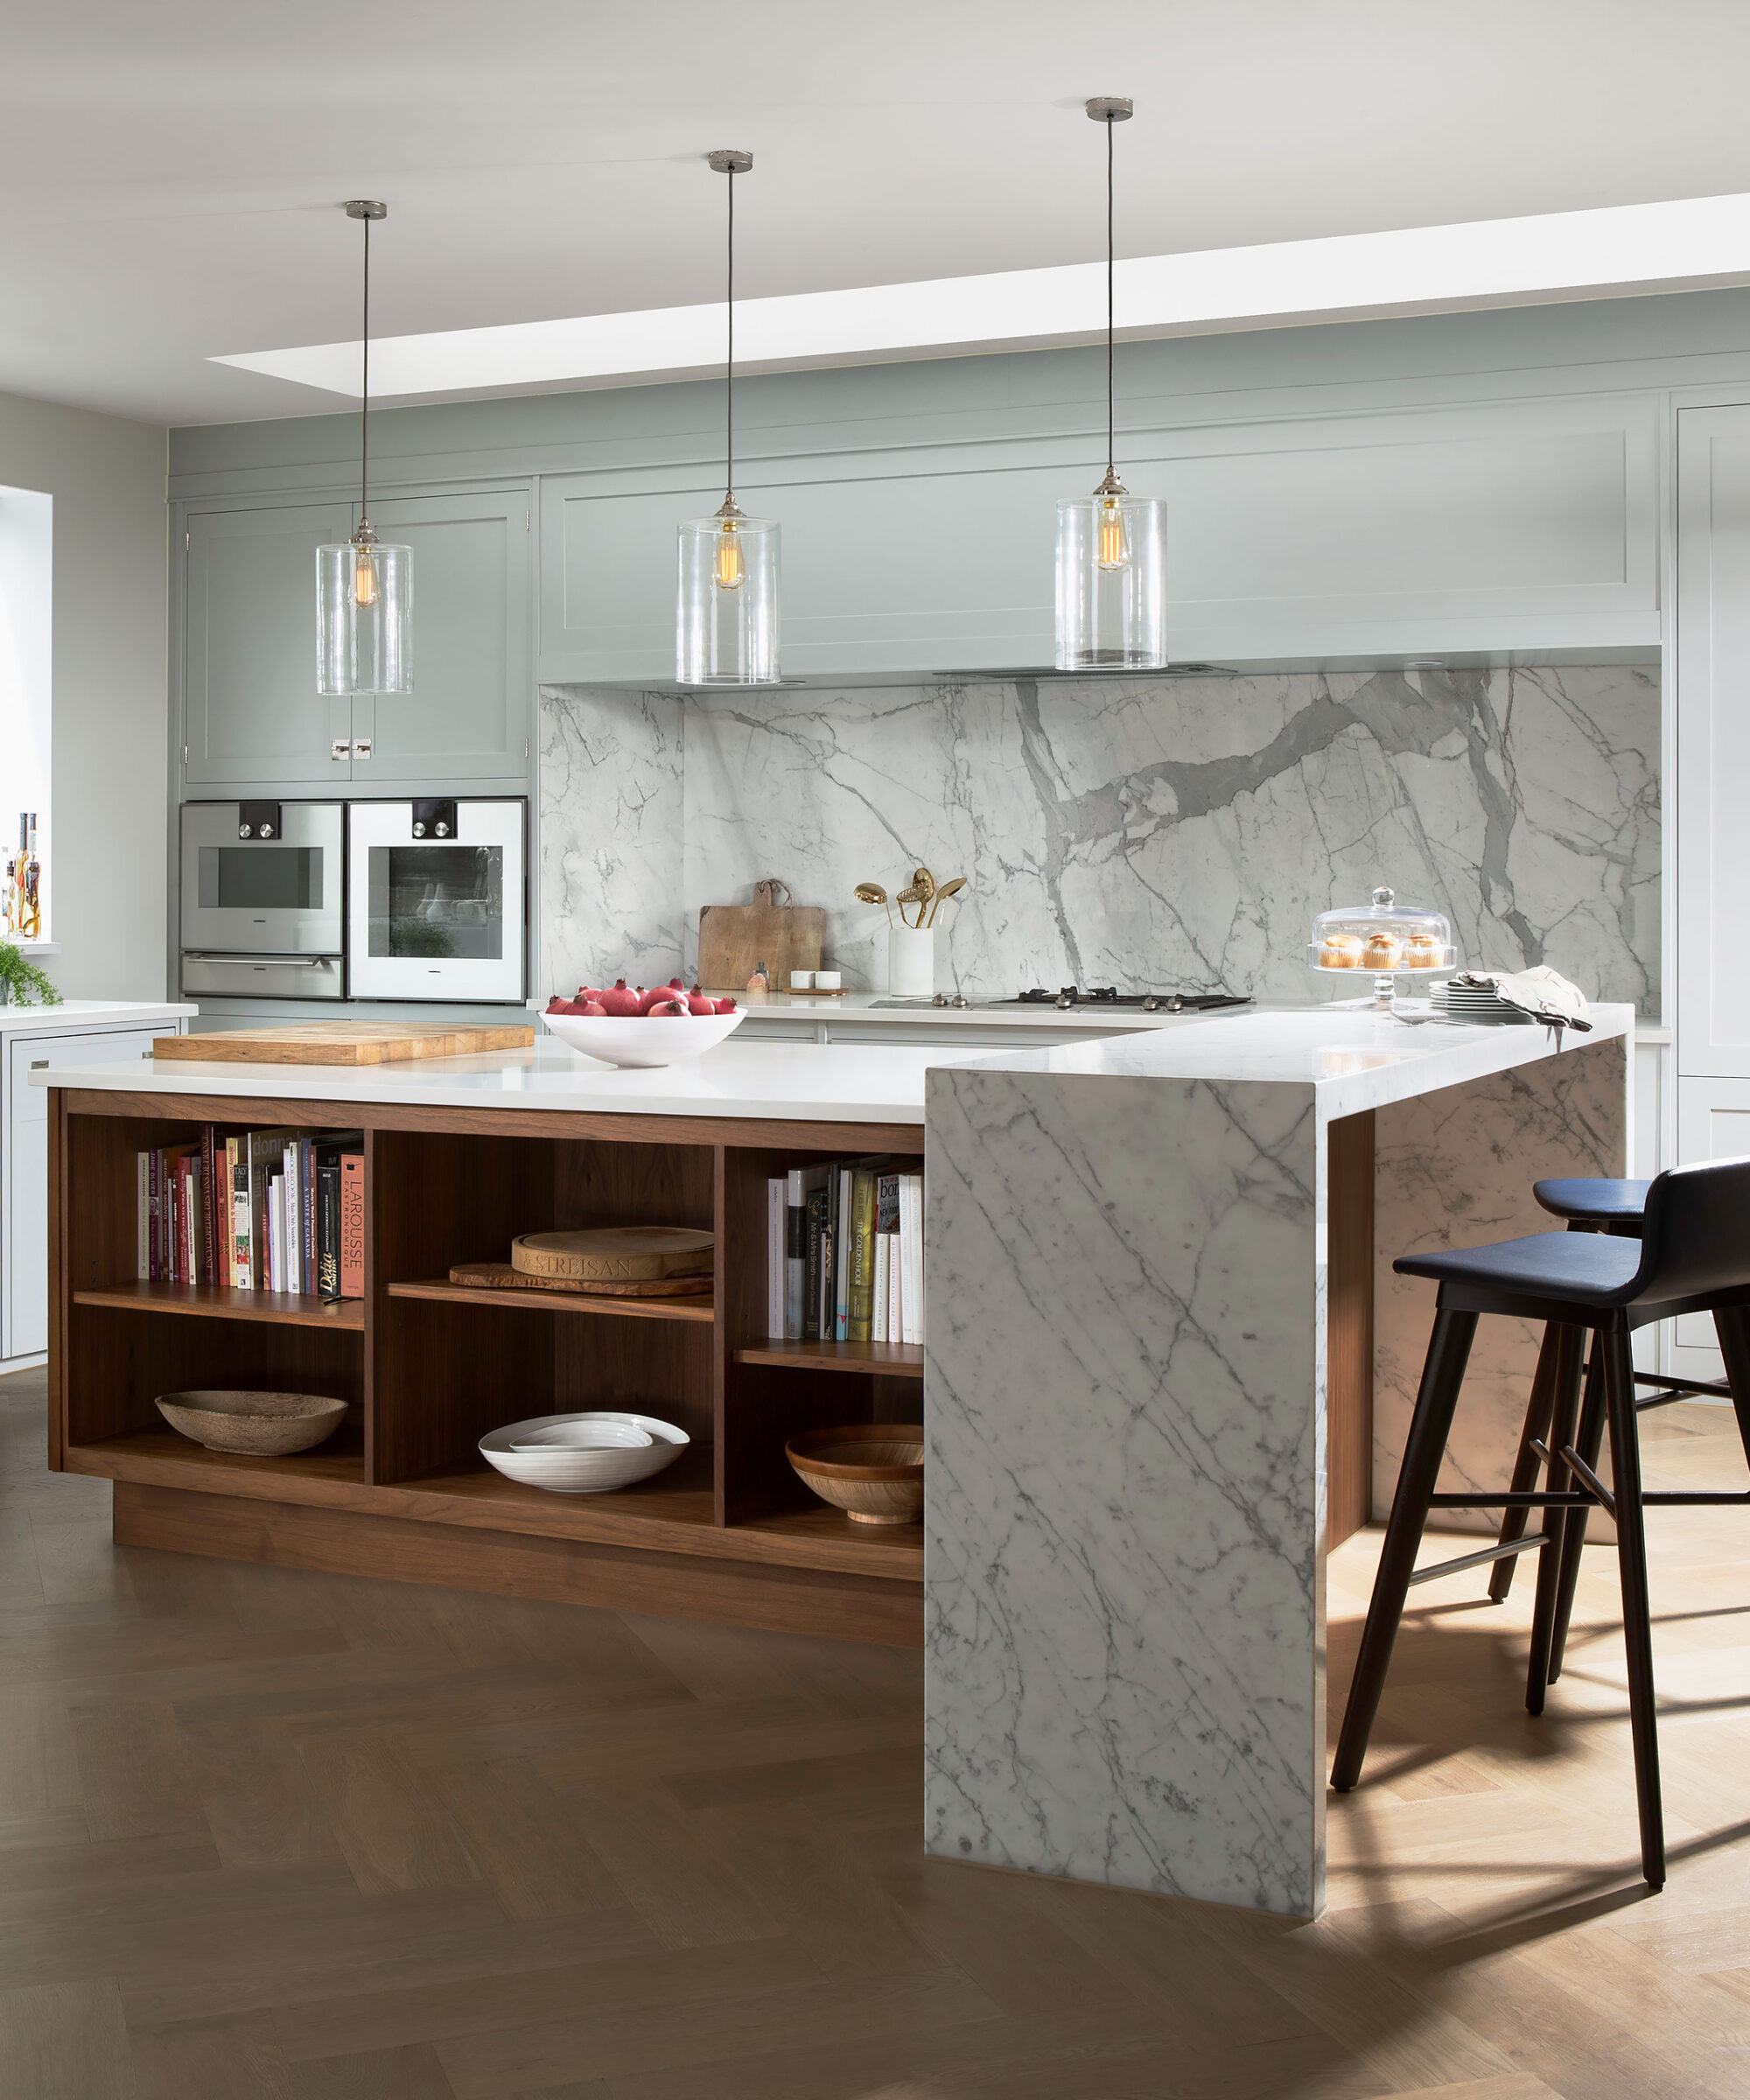 A Smallbone Iconic collection kitchen hand painted in a pale grey-green colour with a natural finish wooden central island with waterfall-edge marble counter